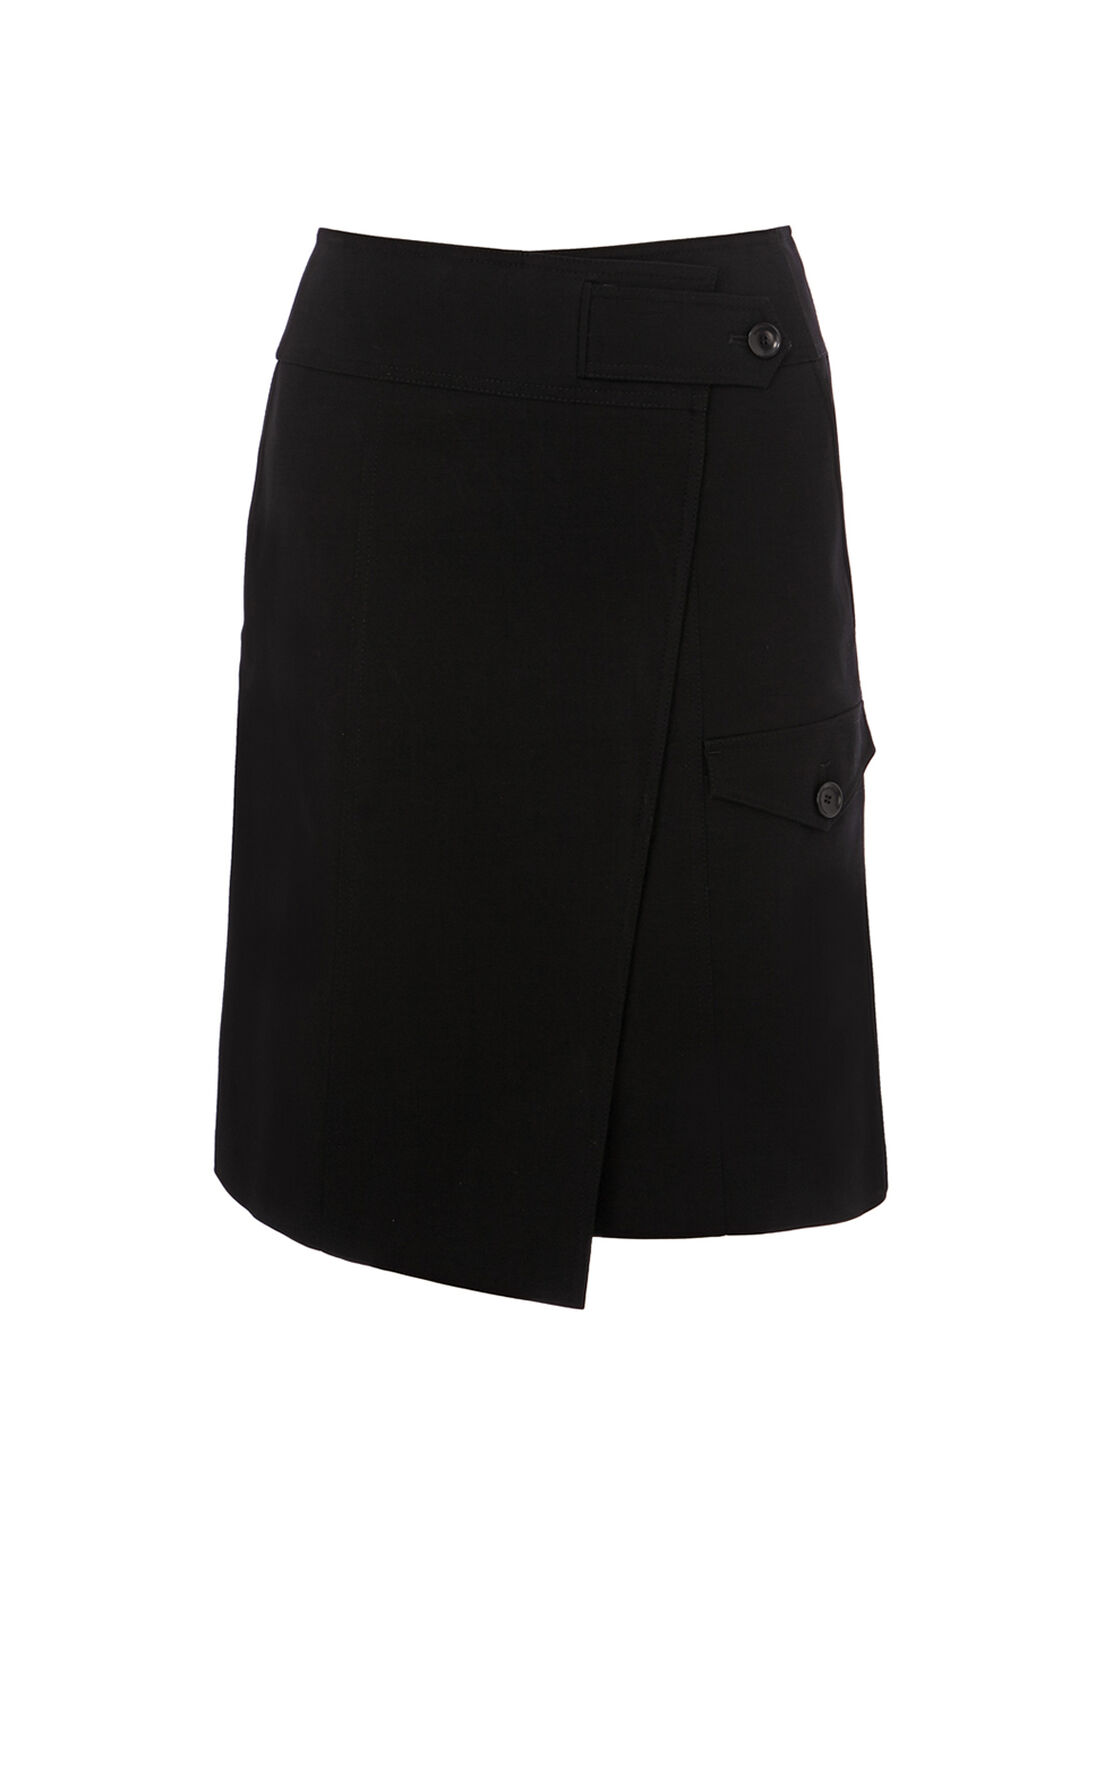 Karen Millen, COTTON WRAP SKIRT Black 0